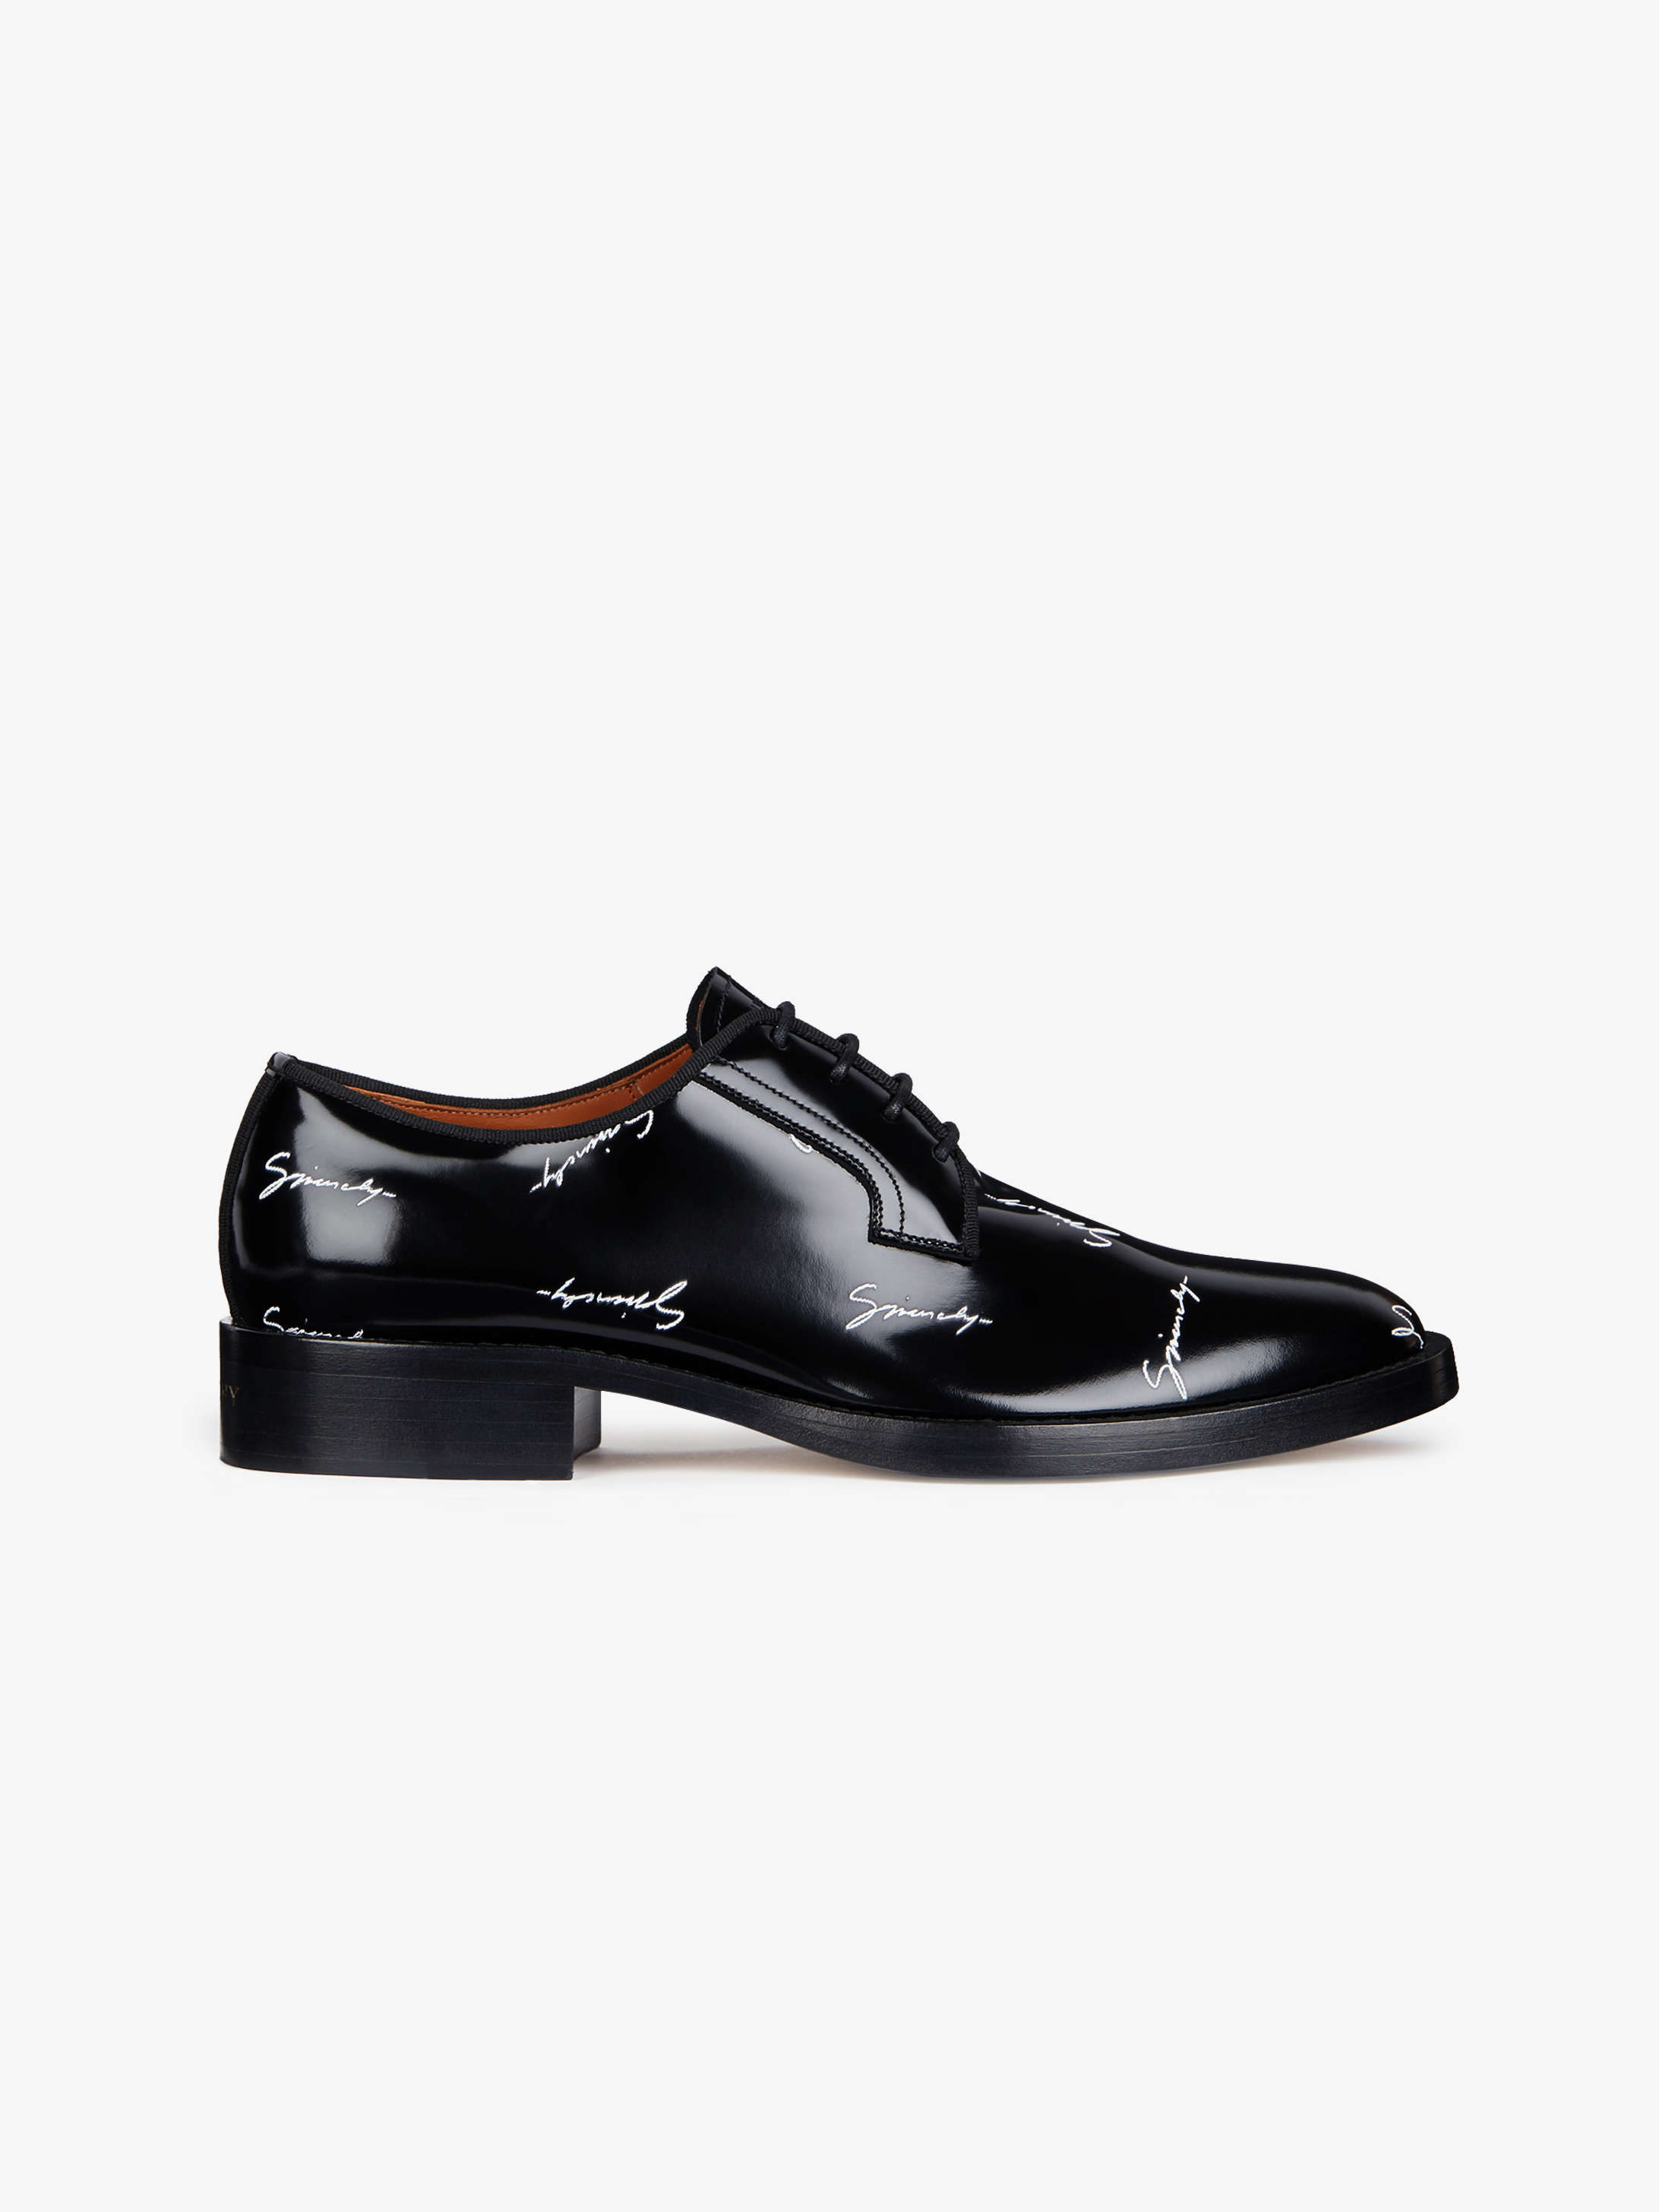 GIVENCHY signature derby shoes in patent leather